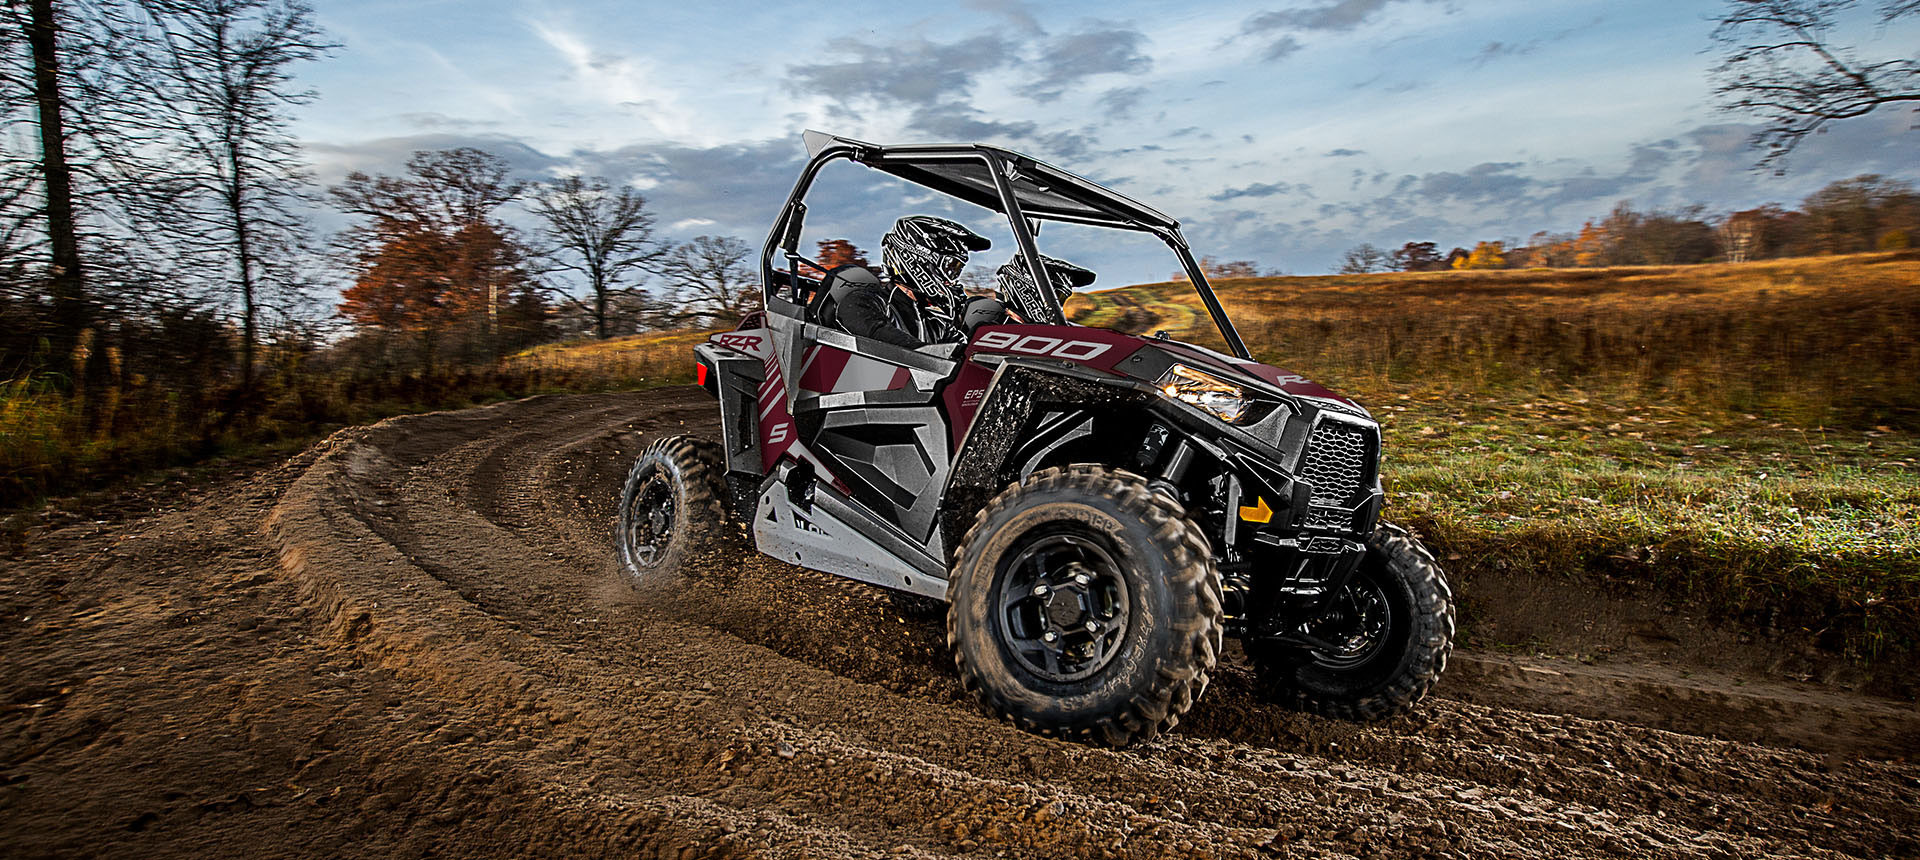 2020 RZR<sup>®</sup> Trail S 900 Instagram image 4